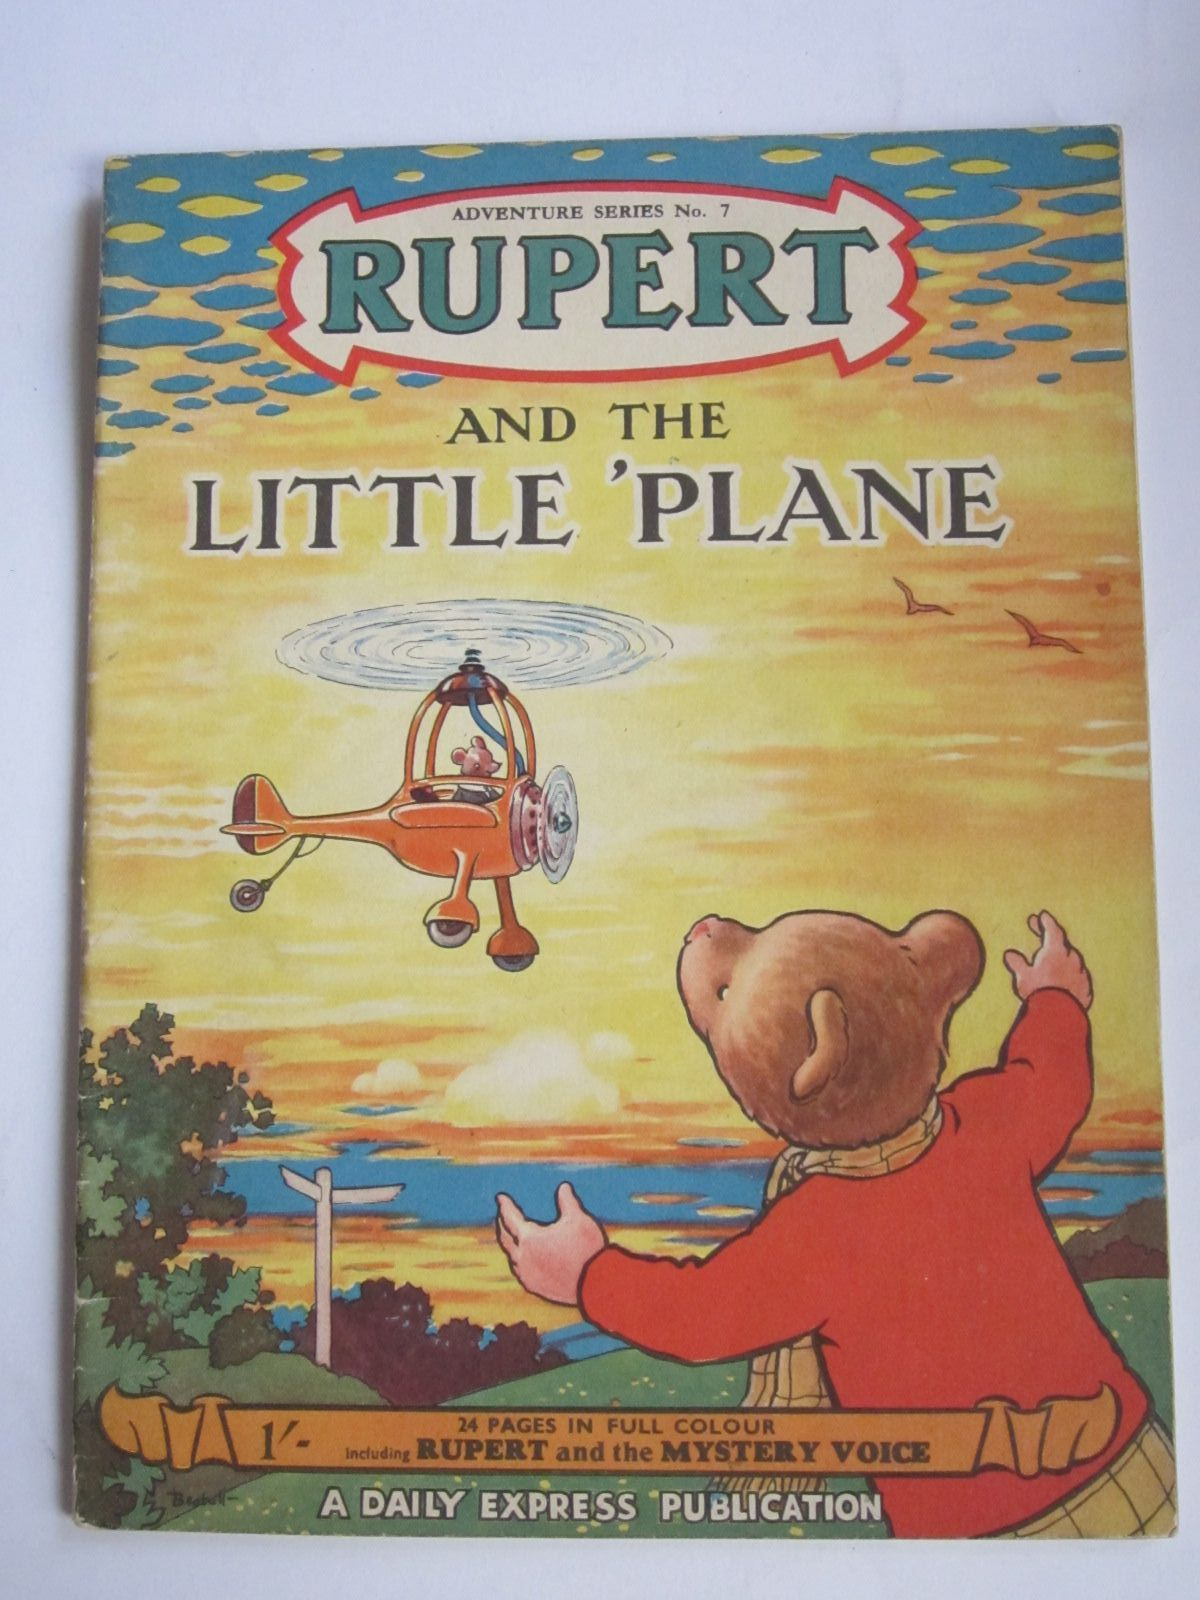 Photo of RUPERT ADVENTURE SERIES No. 7 - RUPERT AND THE LITTLE PLANE written by Bestall, Alfred illustrated by Bestall, Alfred published by Daily Express (STOCK CODE: 1309069)  for sale by Stella & Rose's Books